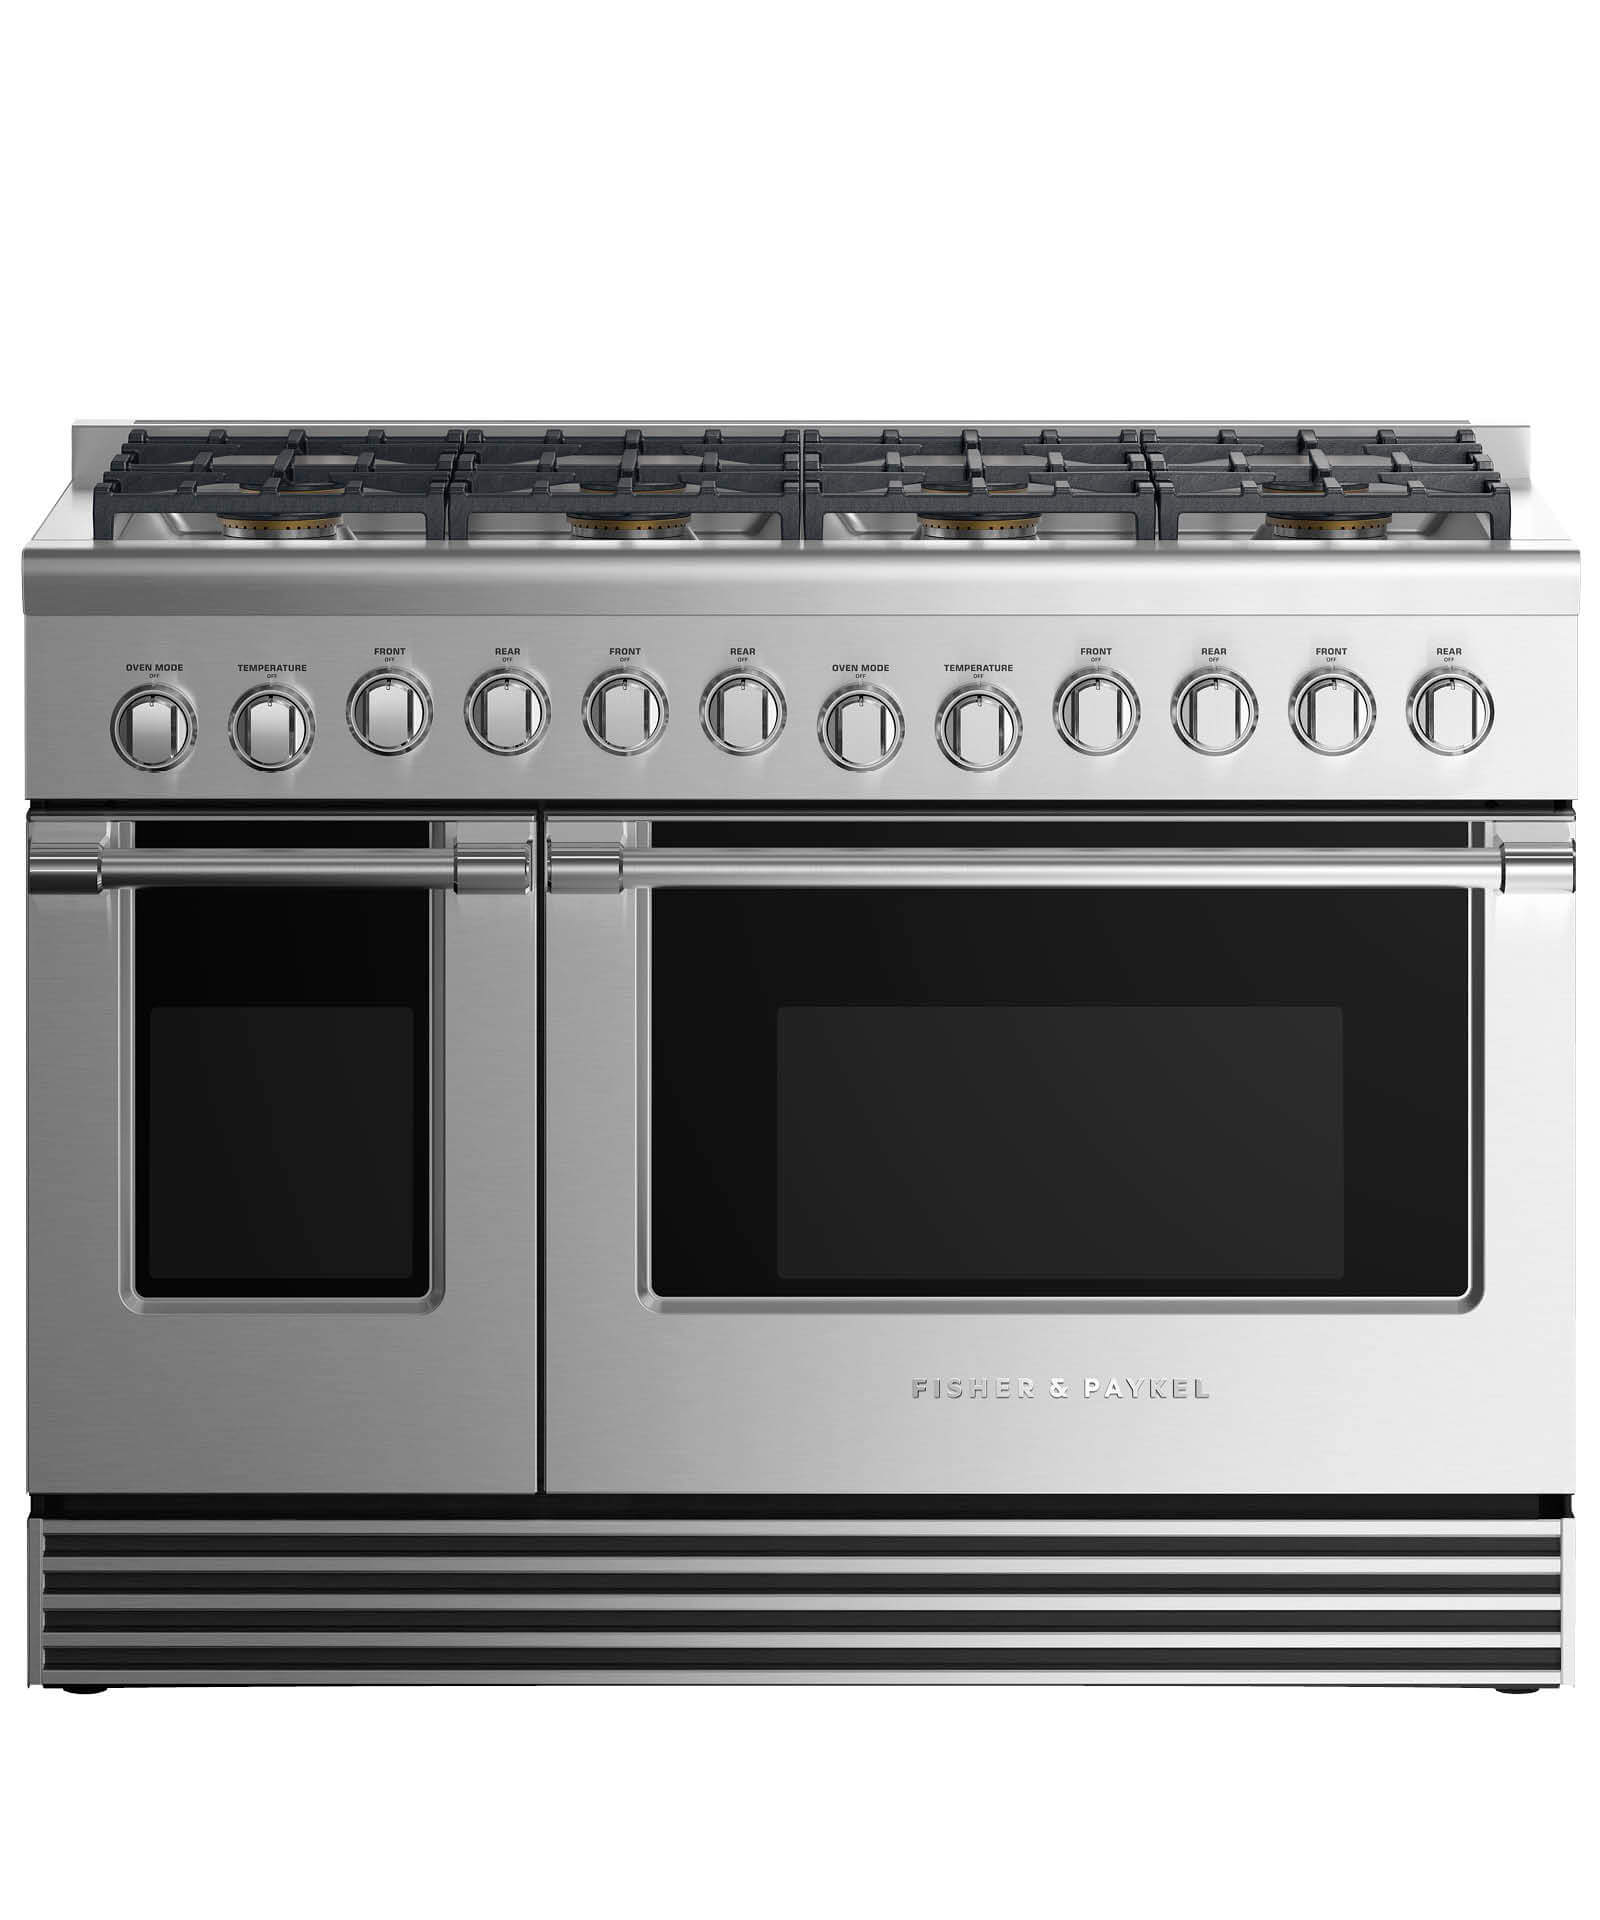 "Fisher and Paykel Dual Fuel Range 48"", 8 Burners (LPG)"